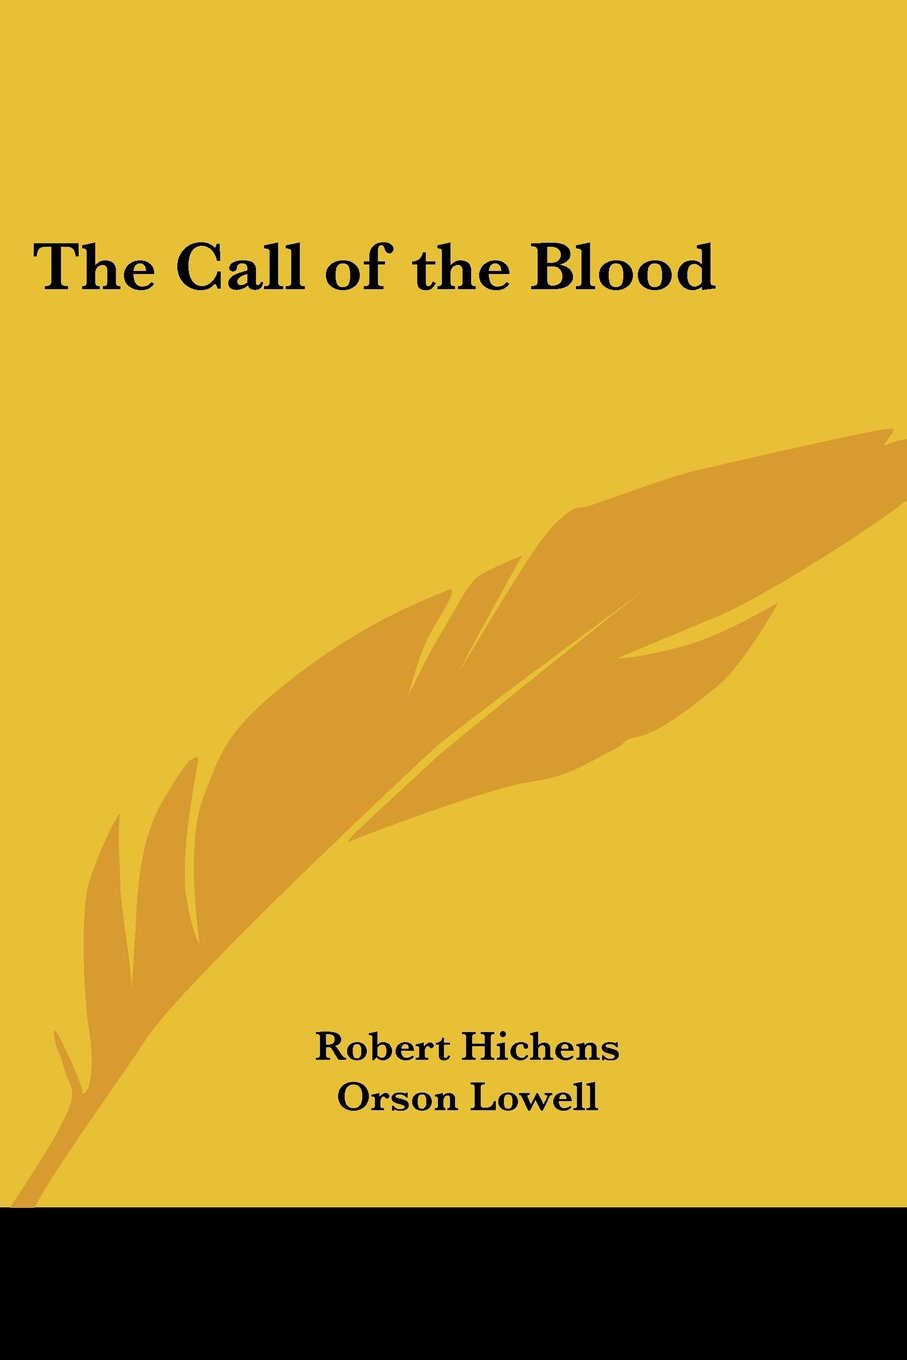 The Call of the Blood ePub fb2 book